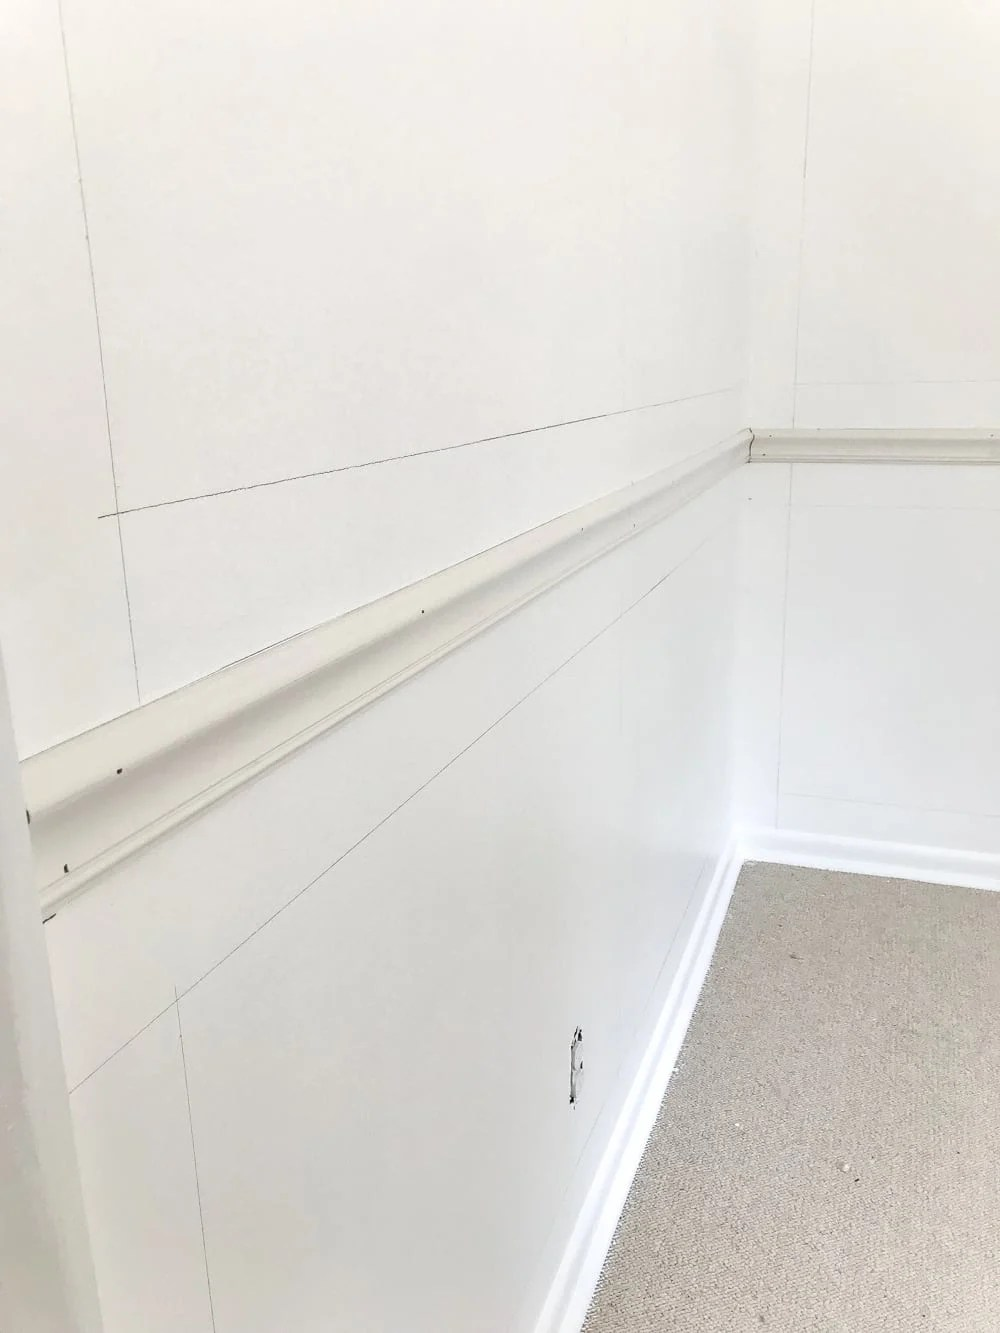 """mark walls for picture frame molding using a 4"""" board as a spacer"""